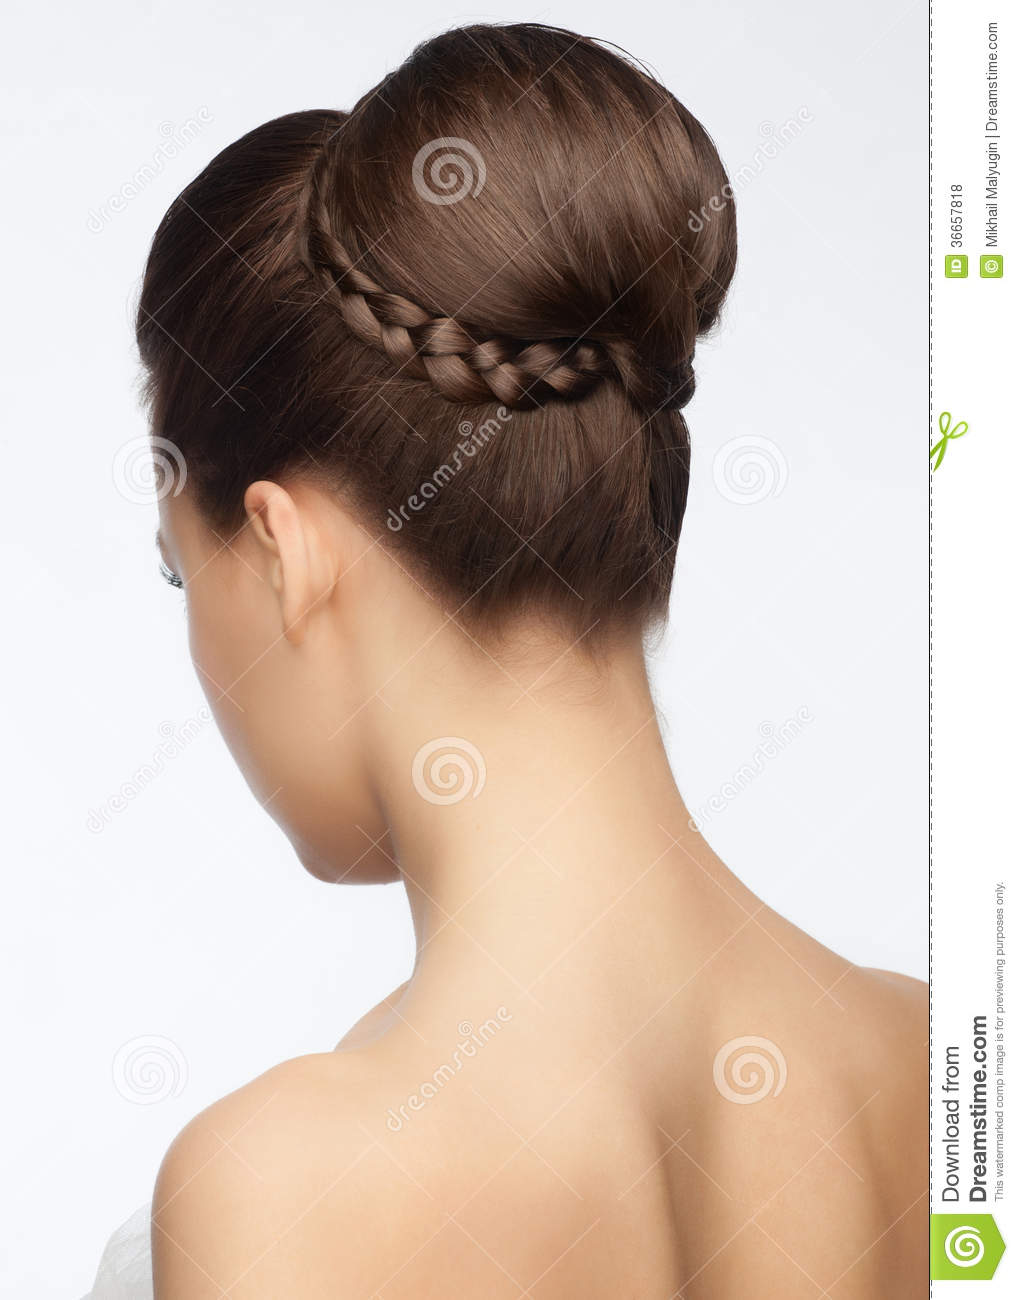 Bridal Hairstyle Stock Photo Image Of Gorgeous Attractive 36657818